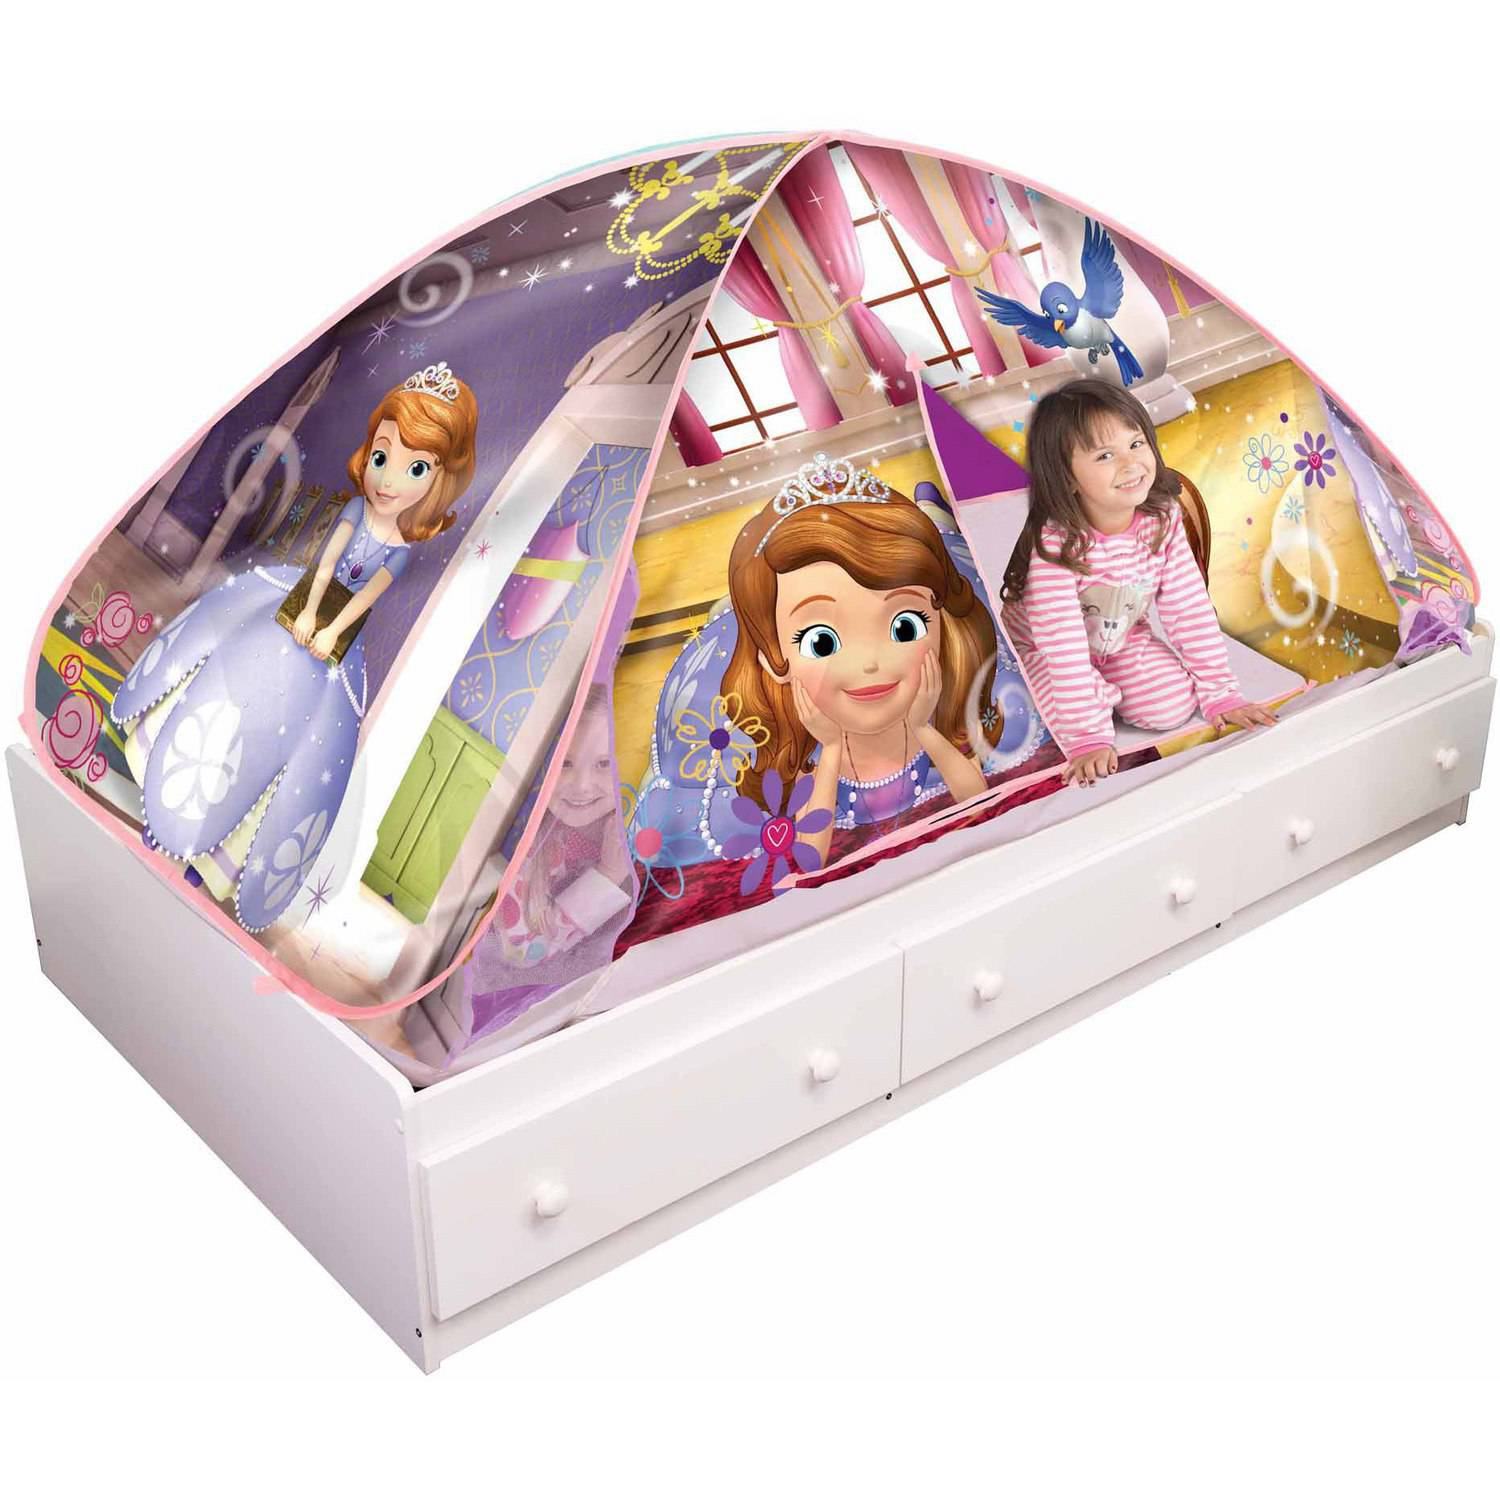 Playhut Disney Sofia the First 2-in-1 Tent